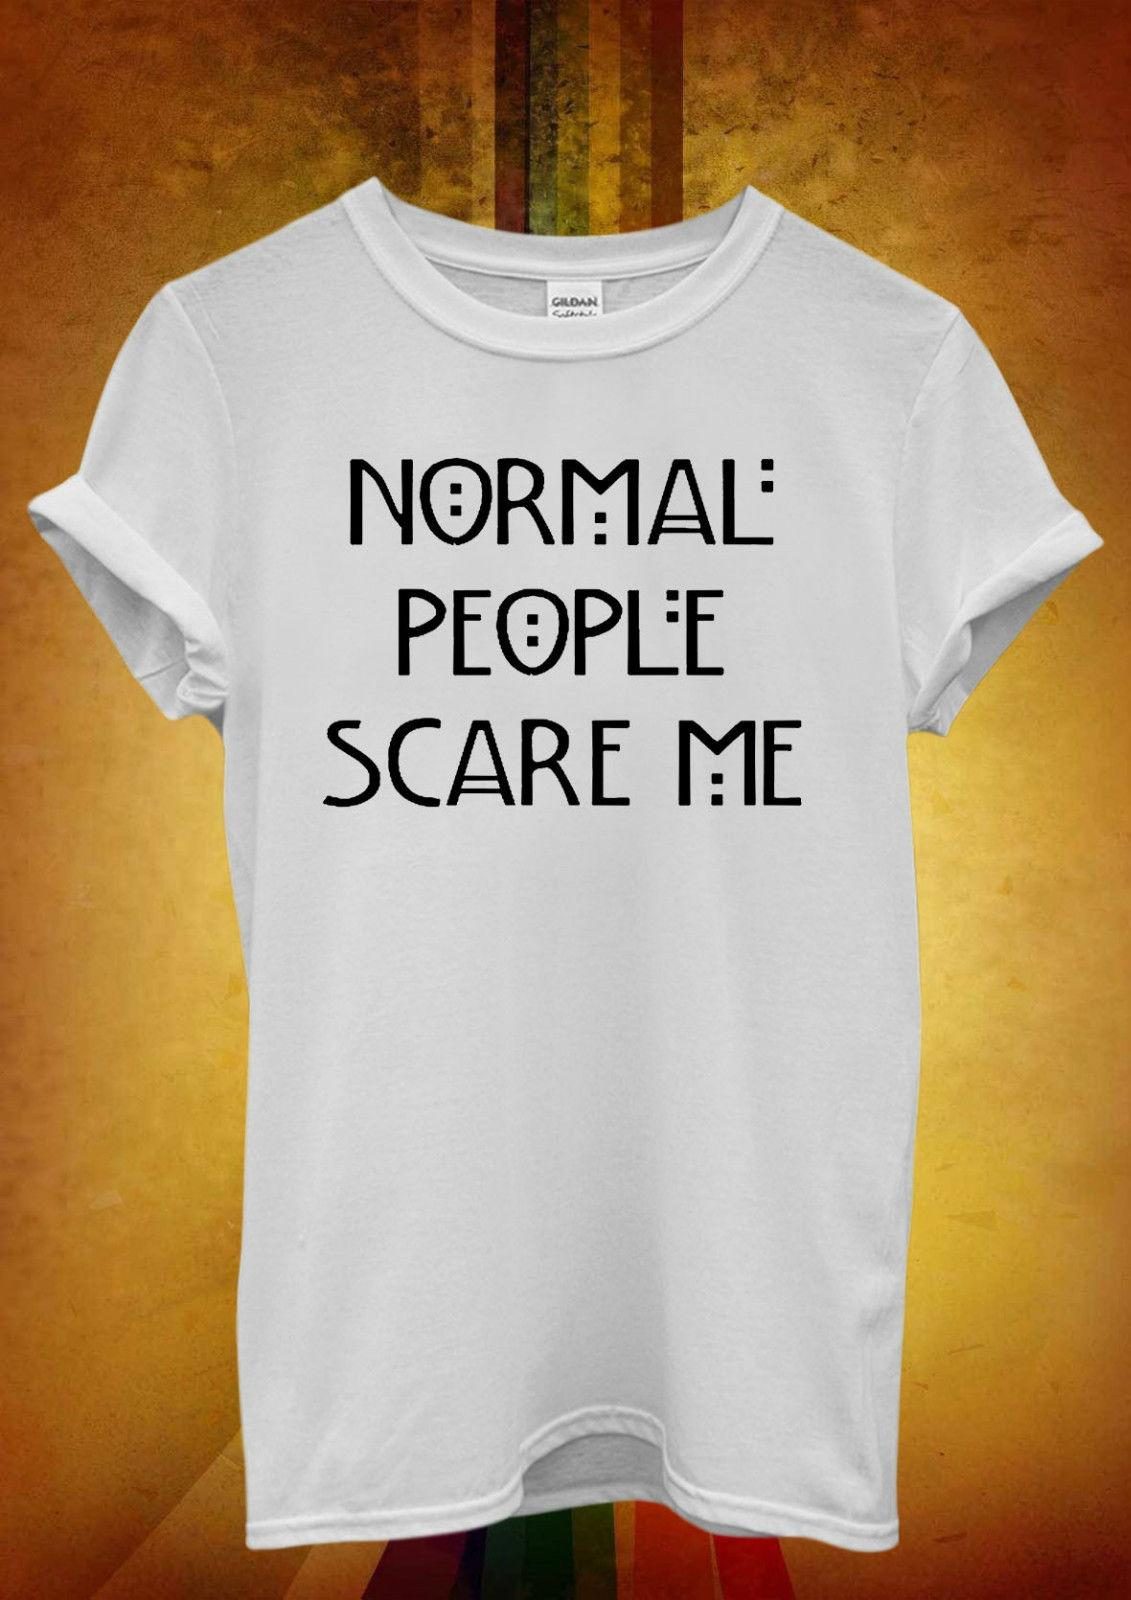 84df38905 Normal People Scare Me Funny Hipster Men Women Unisex T Shirt Tank Top Vest  326 Casual Funny Unisex Tee Gift It T Shirt Design Clever Tee Shirts From  ...